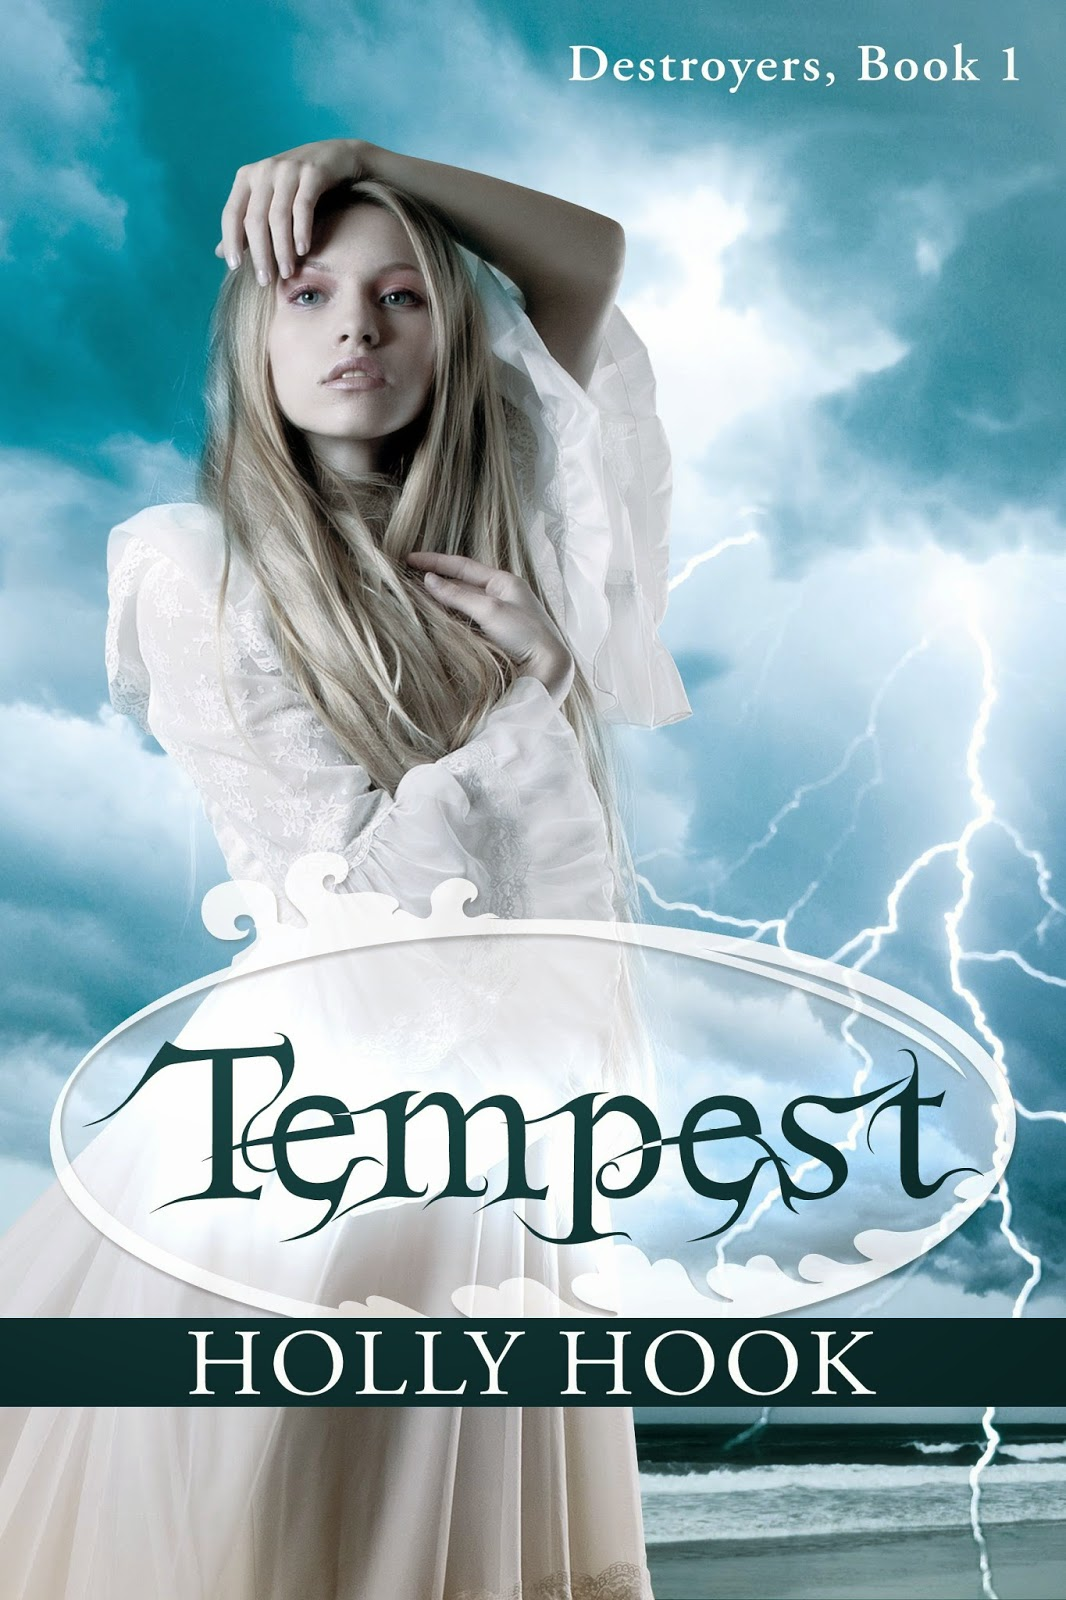 http://www.amazon.com/Tempest-1-Destroyers-Holly-Hook-ebook/dp/B00433TBEG/ref=sr_1_6?s=digital-text&ie=UTF8&qid=1419272987&sr=1-6&keywords=tempest